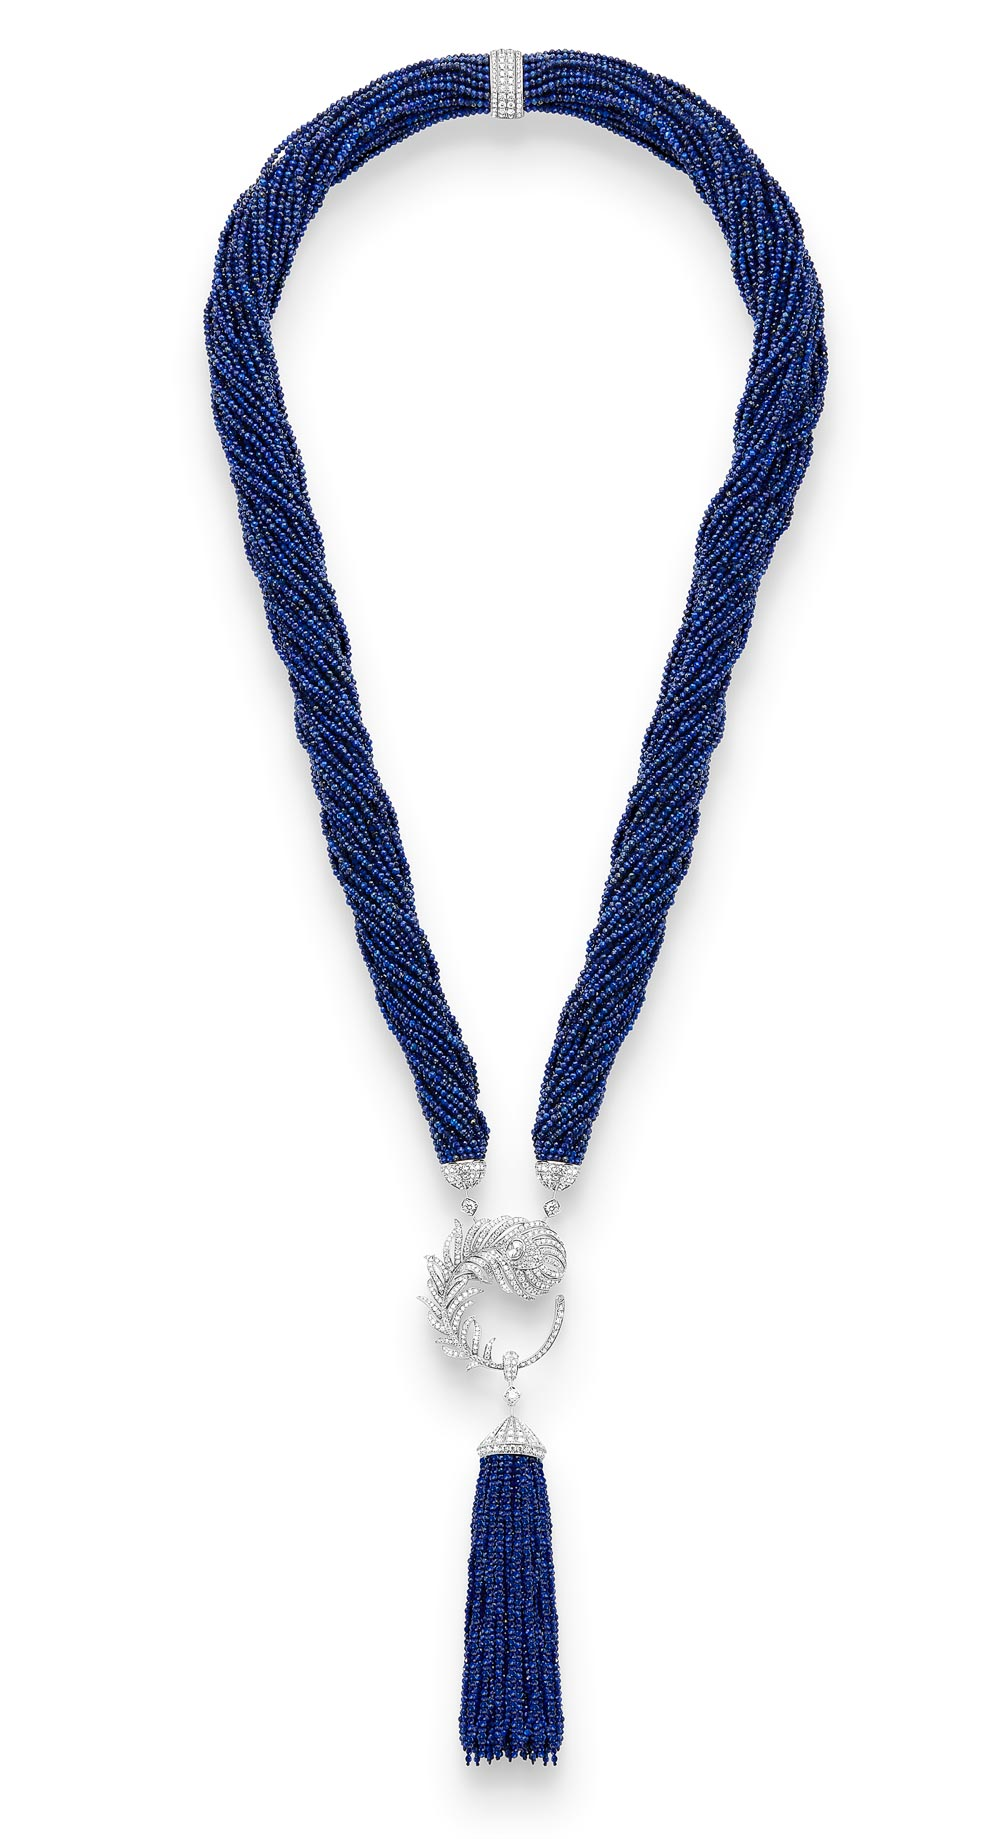 - Boucheron Plume de Paon long necklace, set with an oval rose-cut diamond and lapis lazuli, paved with diamonds, in white gold